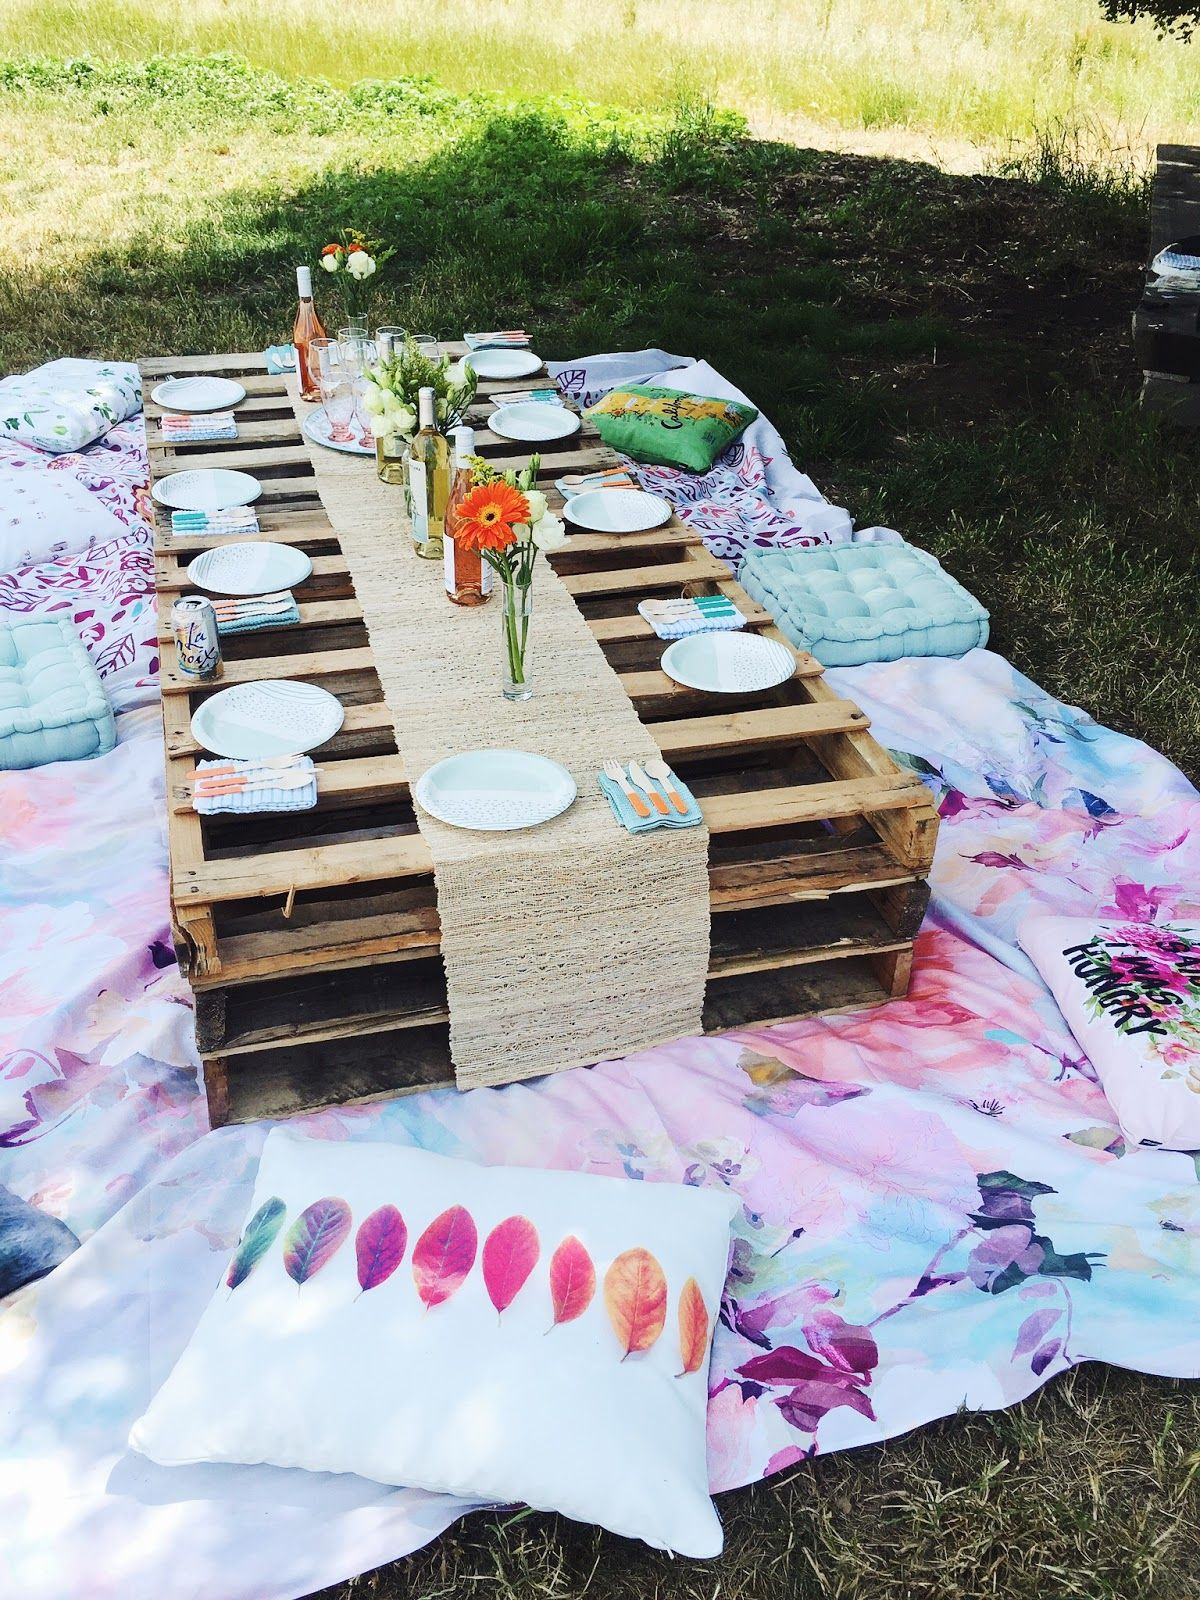 The Cutest Diy Outdoor Picnic Idea With Palettes And Pillows